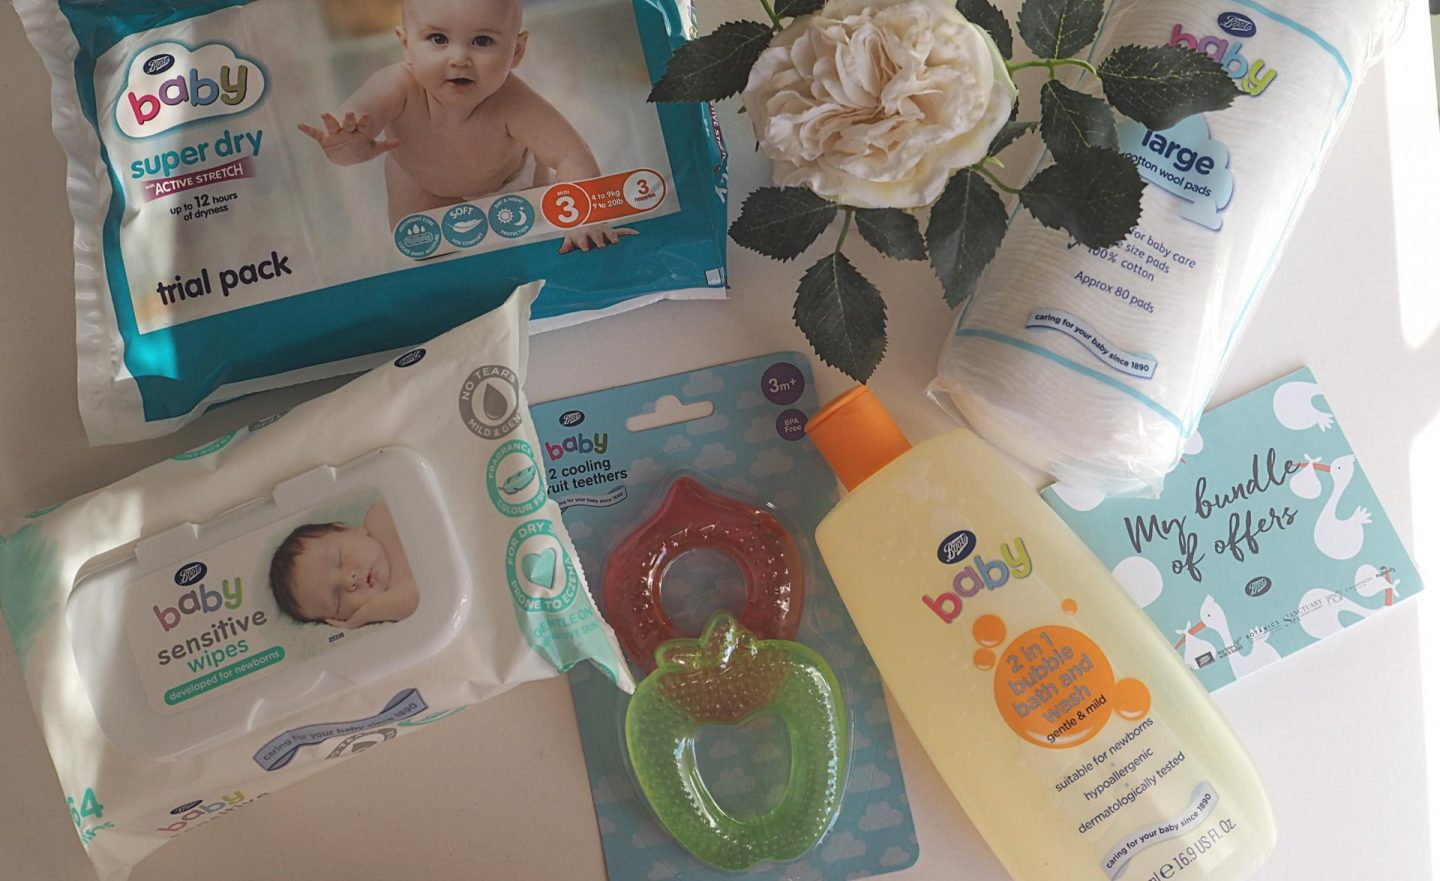 Boots My Baby Bundle offer instore, spend £20 on Boots baby, mamasvib